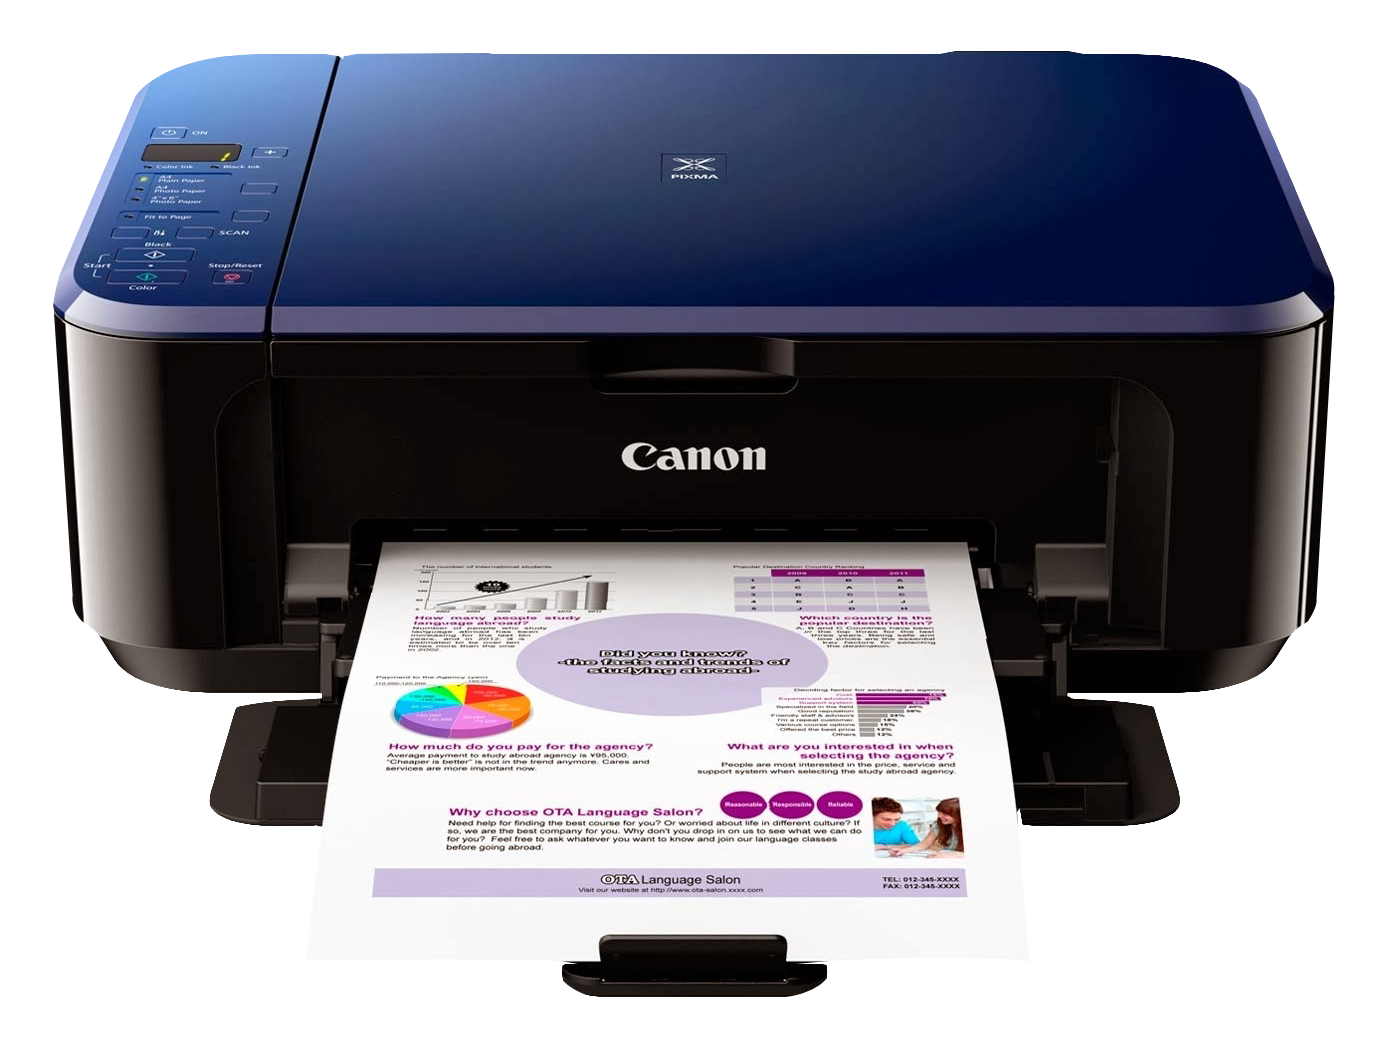 Canon Color Photo Printer PNG Image